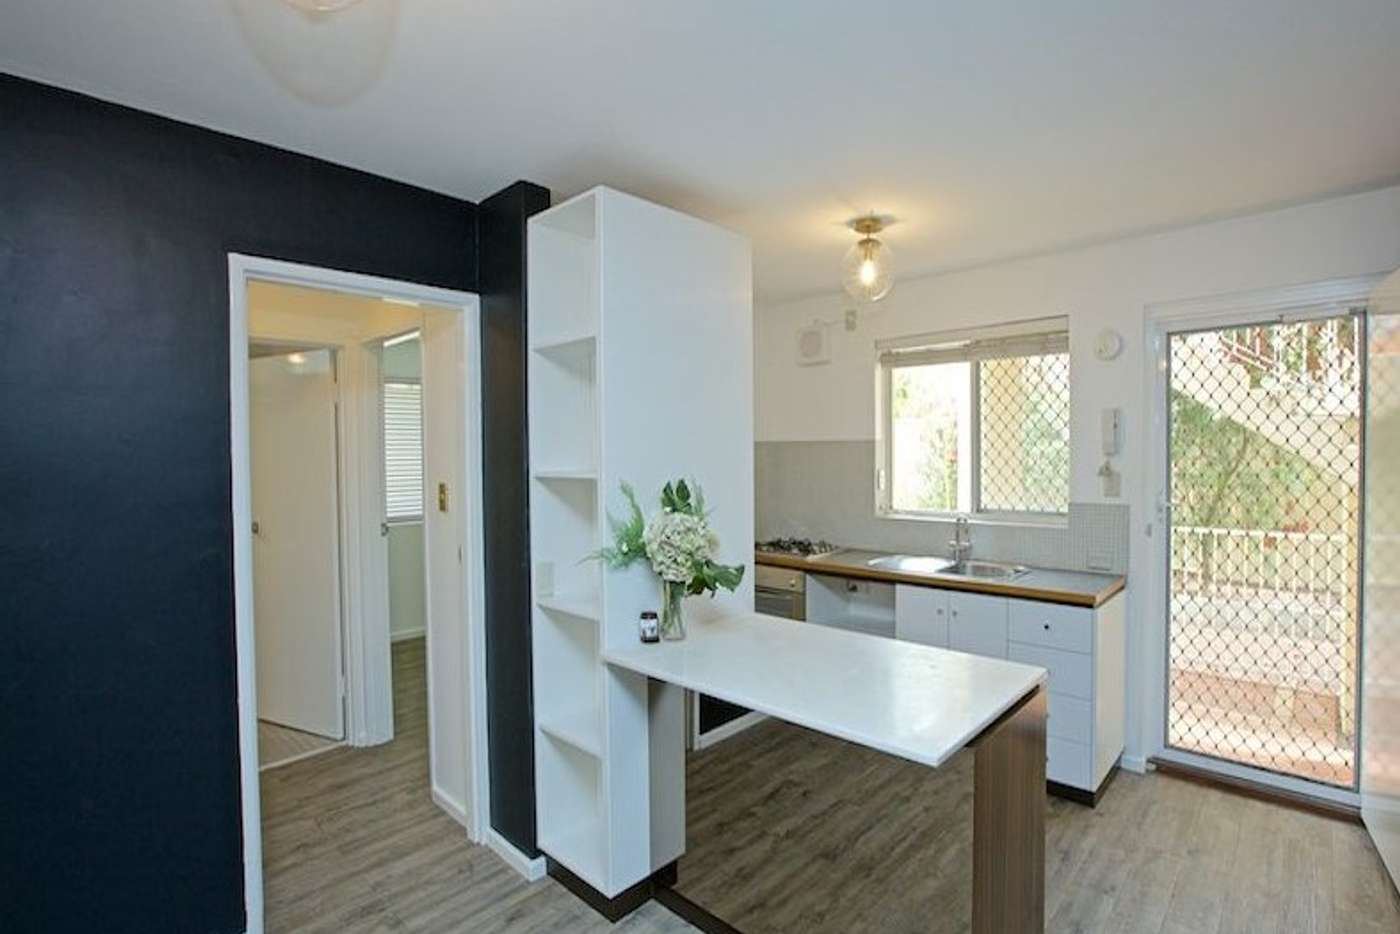 Main view of Homely house listing, 1/68 First Avenue, Mount Lawley WA 6050